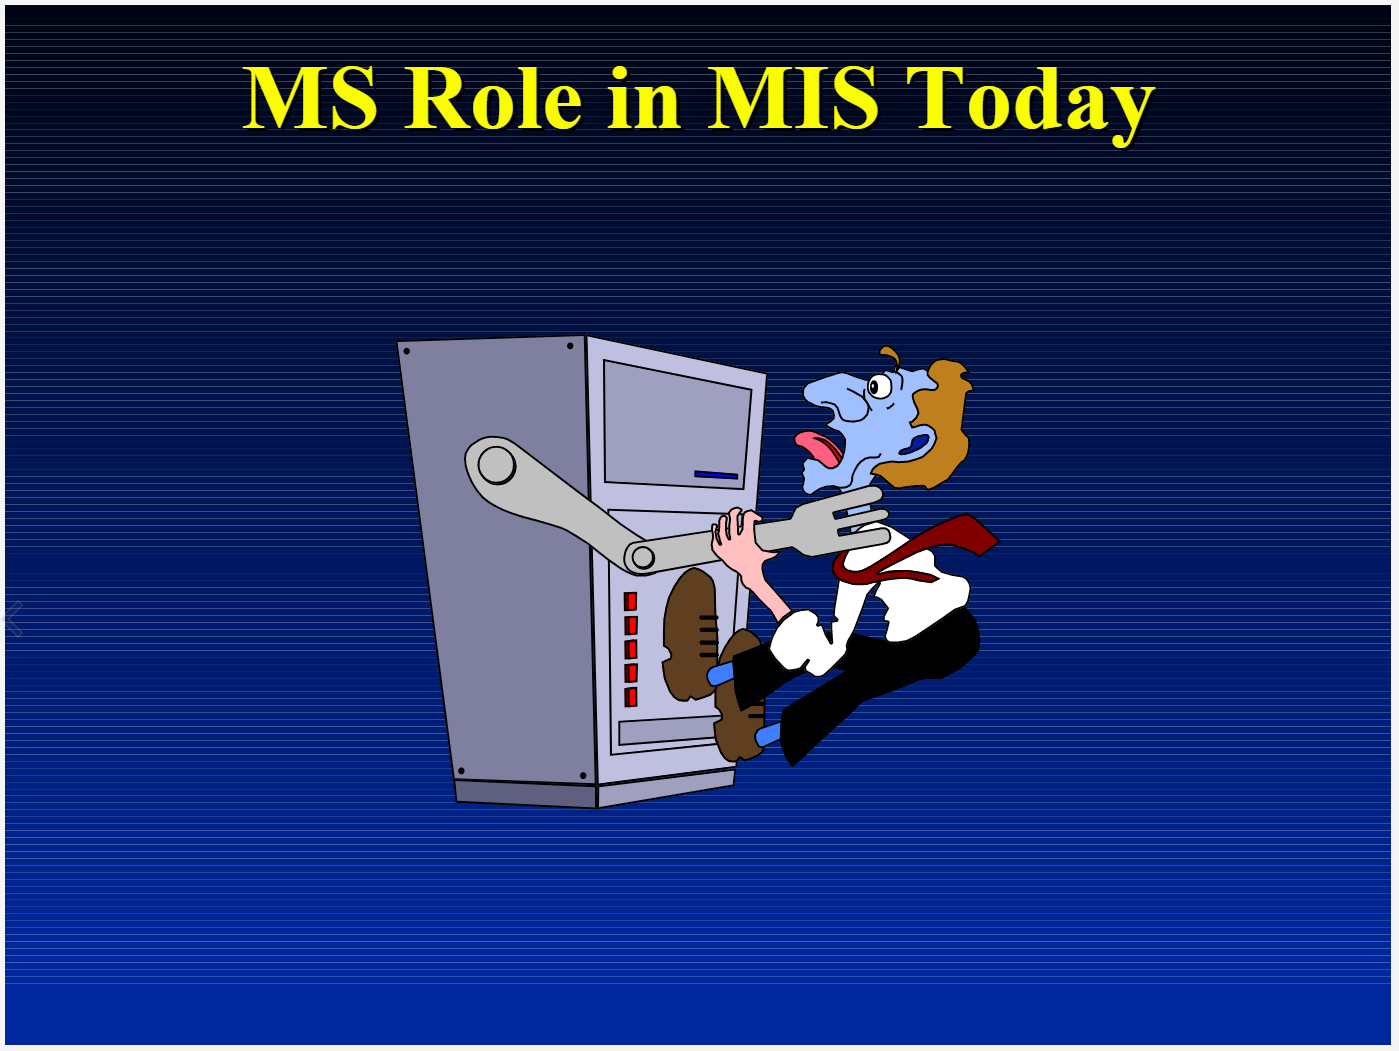 MS Role In MIS Today slide title. A mainframe computer strangling the IT person.